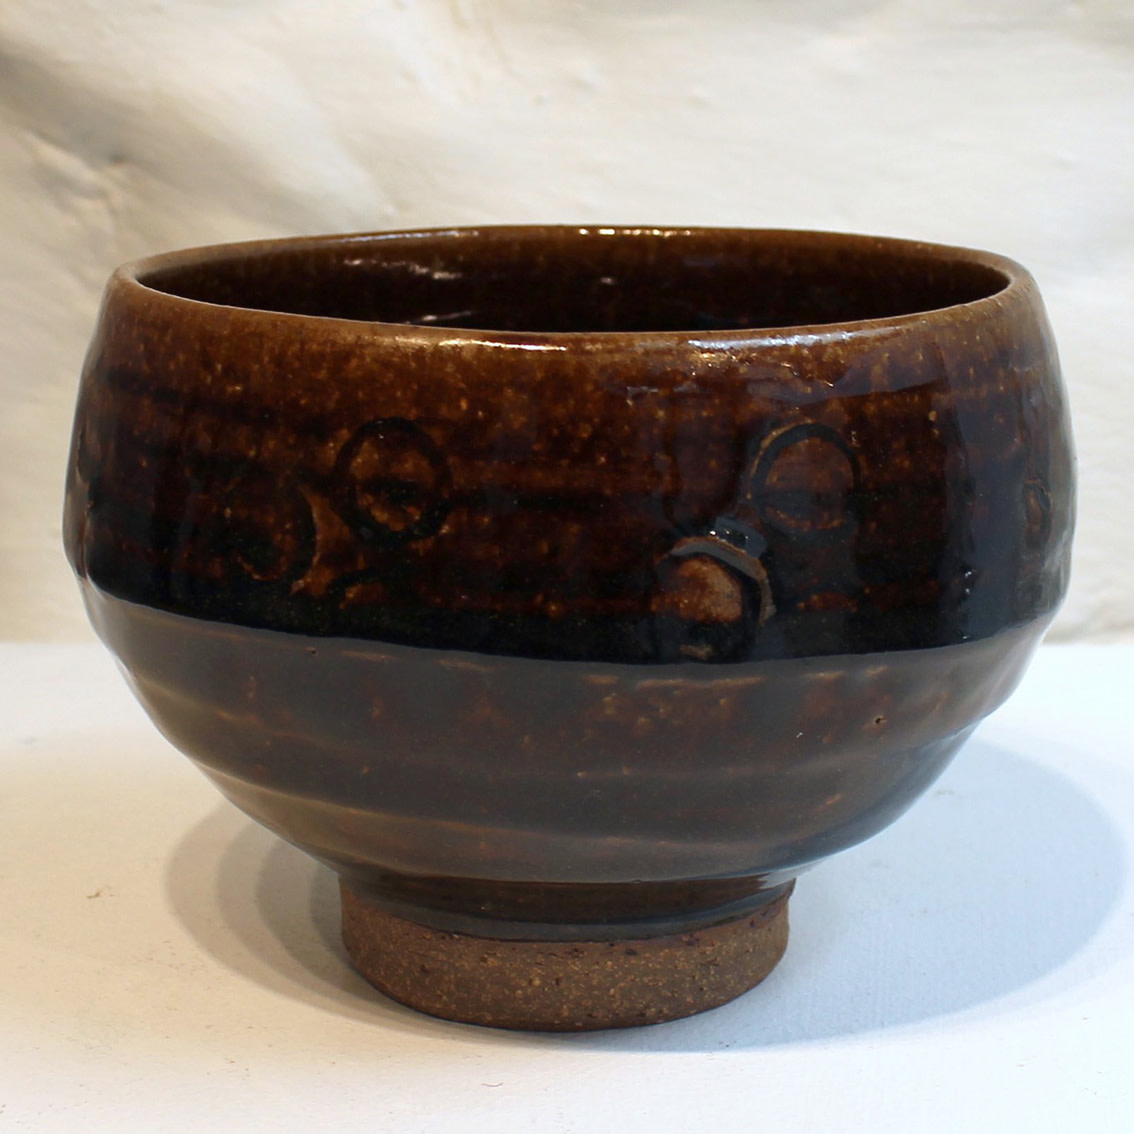 "<span class=""link fancybox-details-link""><a href=""/artists/200-matthew-tyas/works/5454-matthew-tyas-toffee-chawan-bowl-2018/"">View Detail Page</a></span><div class=""artist""><strong>Matthew Tyas</strong></div> <div class=""title""><em>Toffee Chawan Bowl</em>, 2018</div> <div class=""signed_and_dated"">stamped by the artist</div> <div class=""medium"">glazed thrown stoneware</div><div class=""copyright_line"">Copyright The Artist</div>"